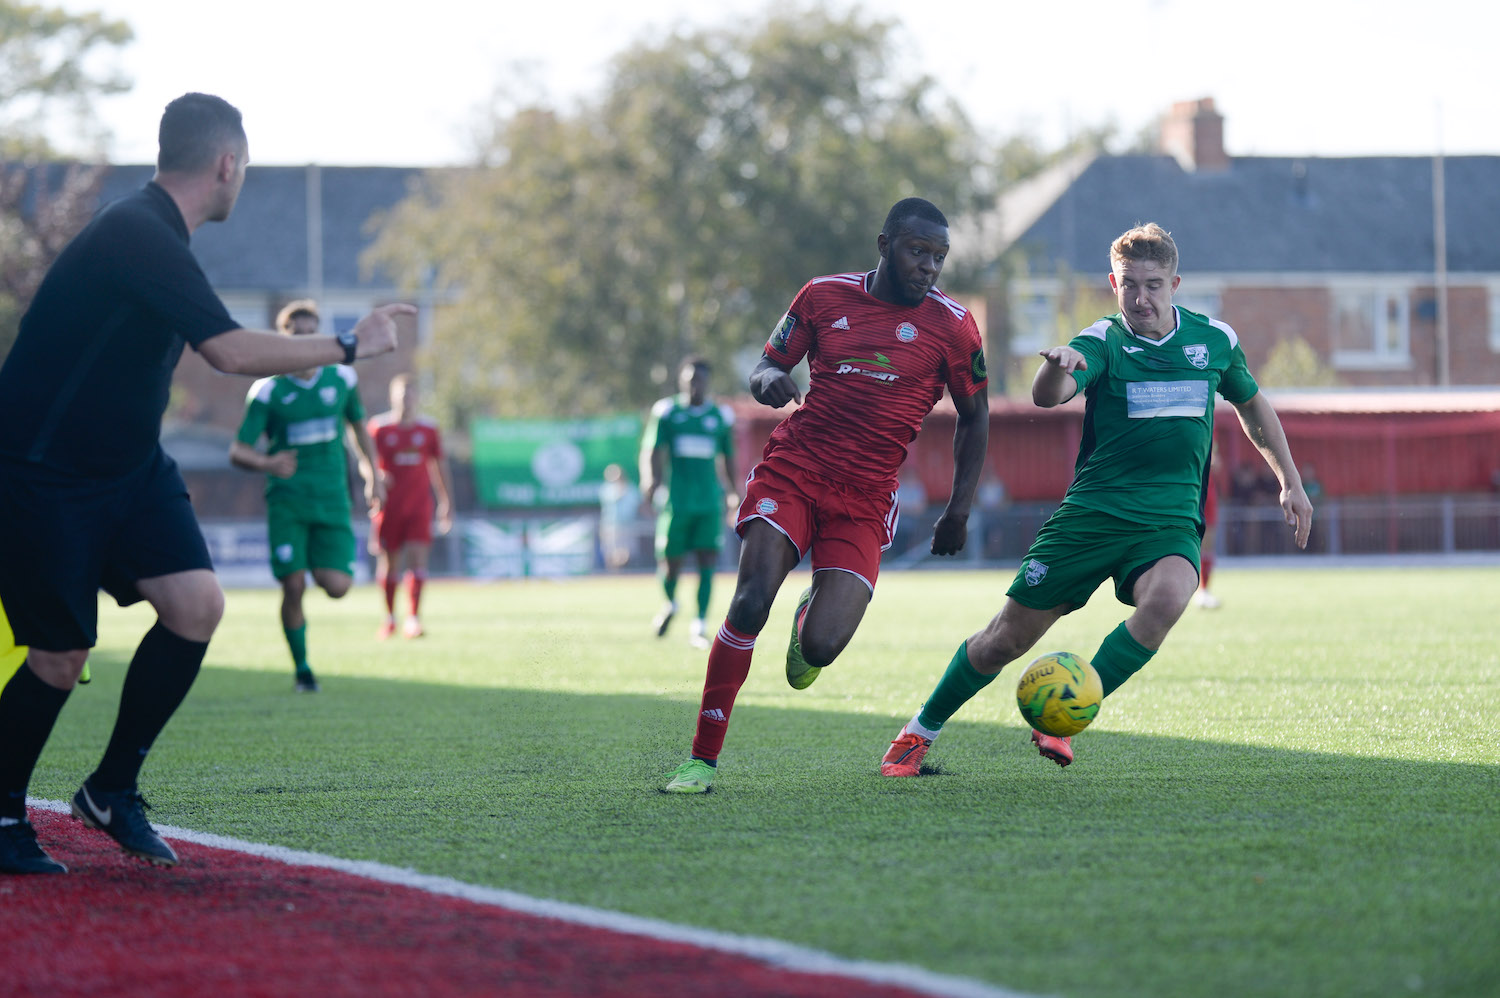 Read the full article - GALLERY | 19/20: Leatherhead [H] – League